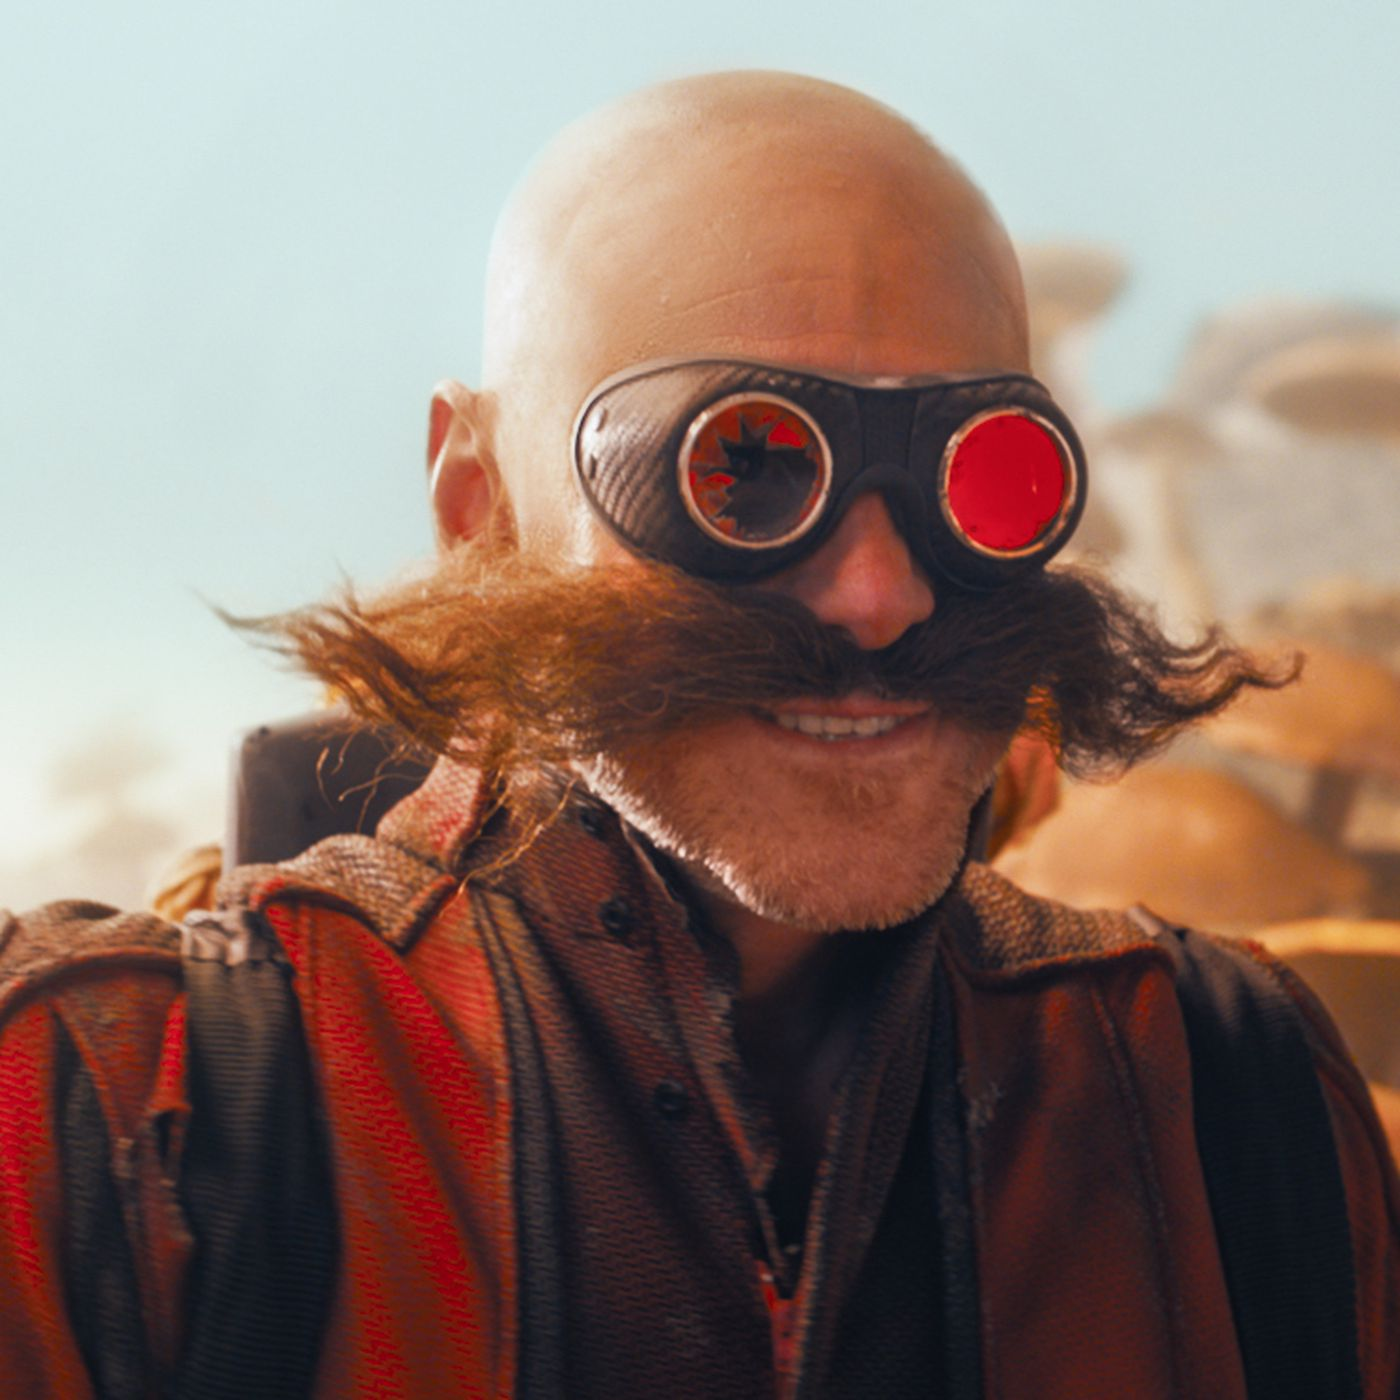 Dr Robotnik Vs Eggman Why Fans Debate Sonic The Hedgehog S Villain Polygon